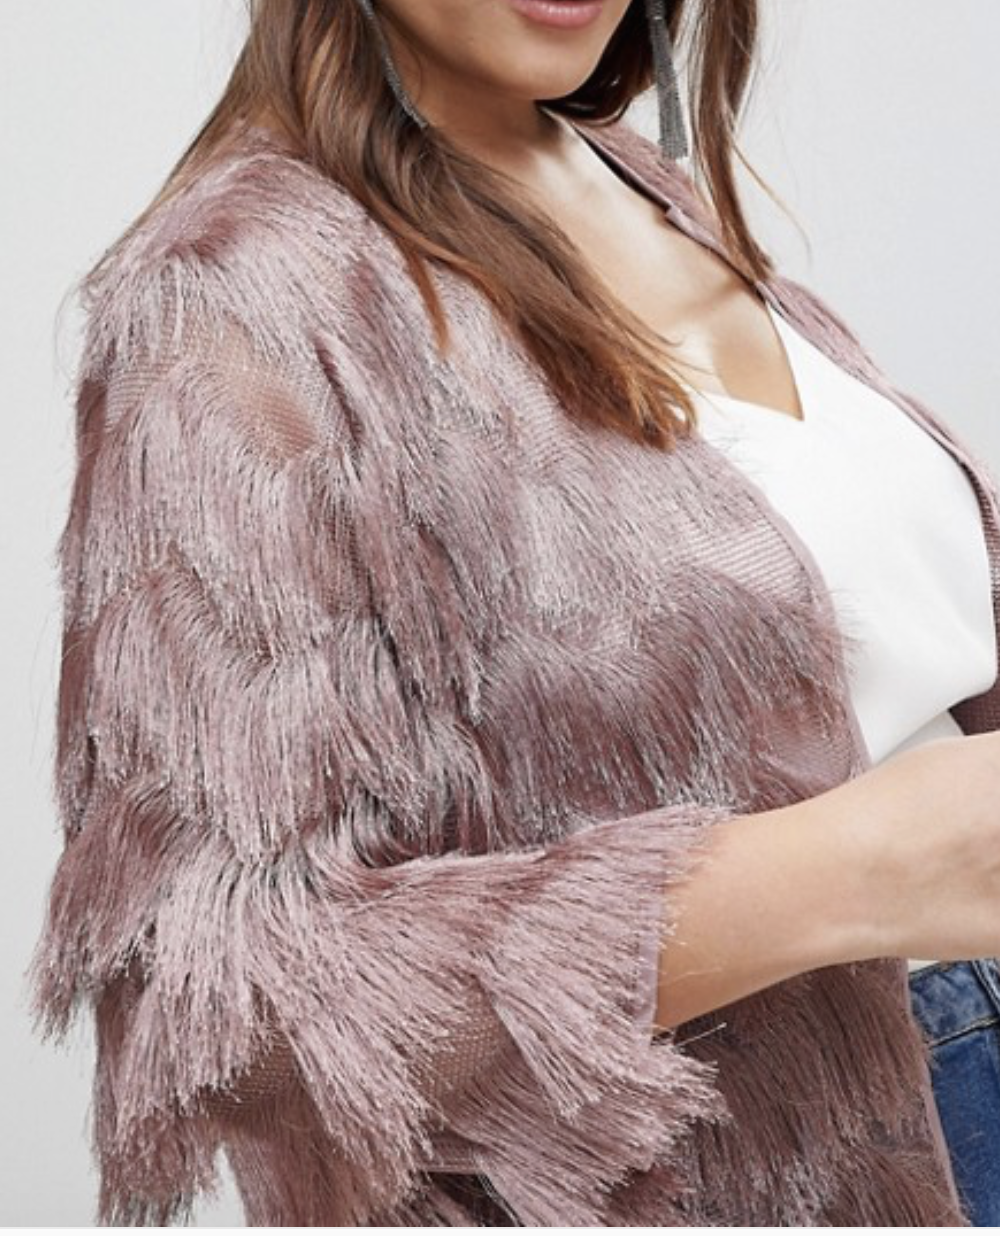 Fringe / Tassel is in. Who doesn't love a good fringe? Get it from ASOS  here.